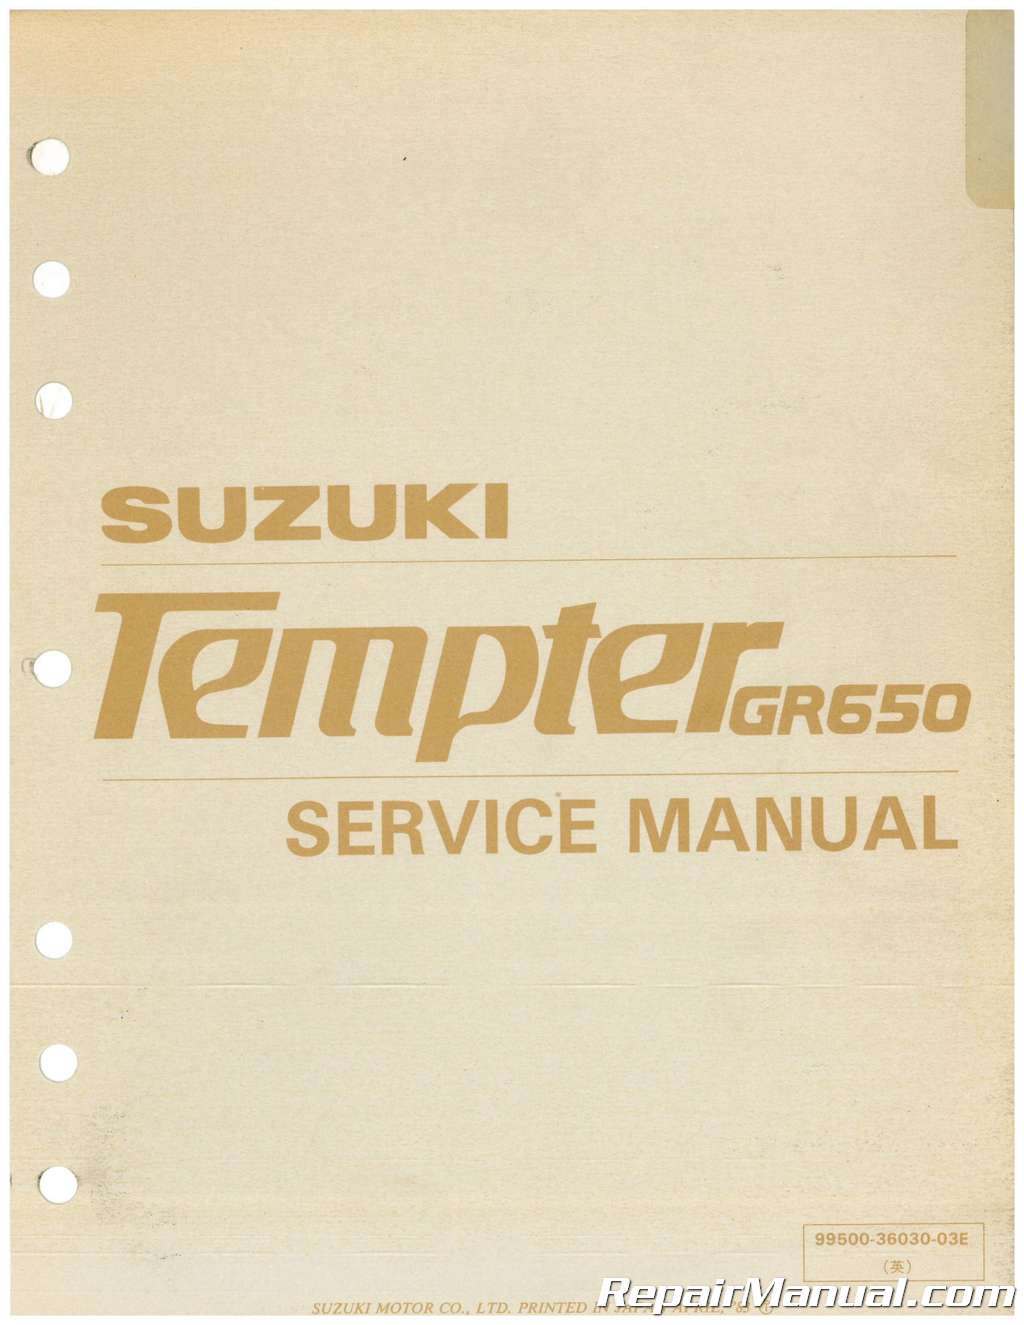 1983 gr650 tempter owners manual